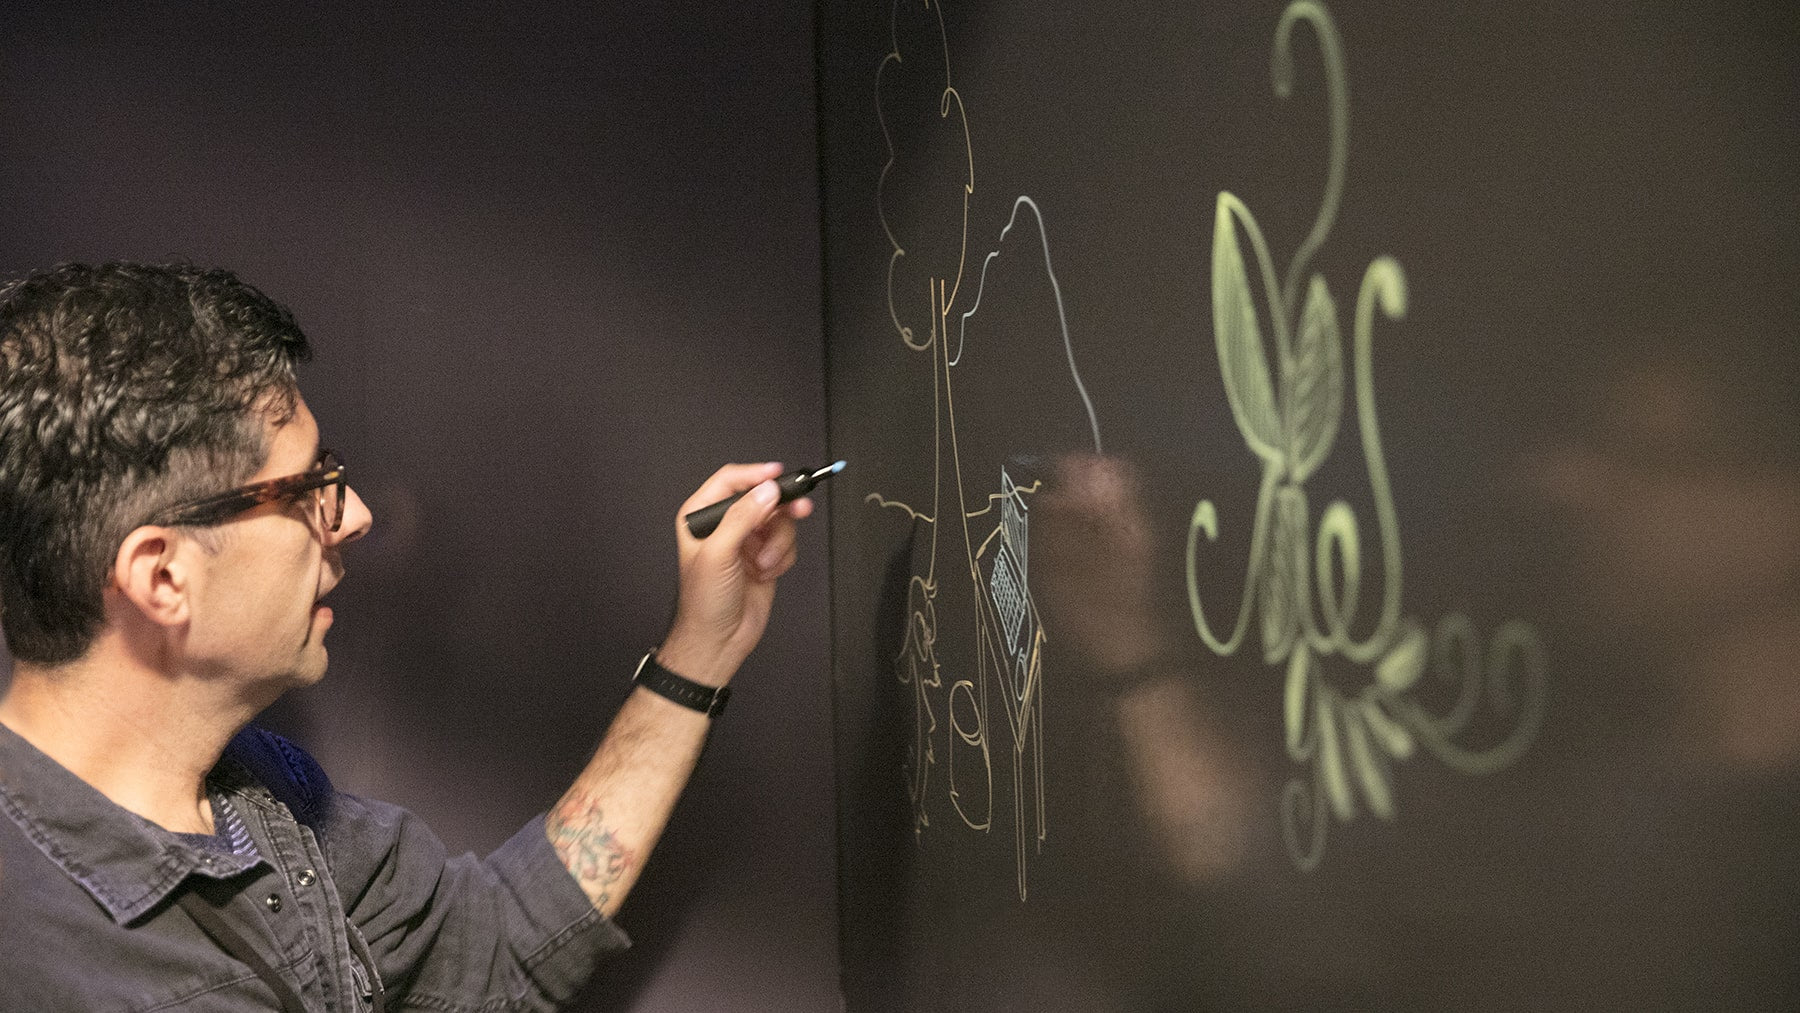 male drawing on a wall painted with Benjamin Moore's Clear High Gloss Notables Dry Erase Paint